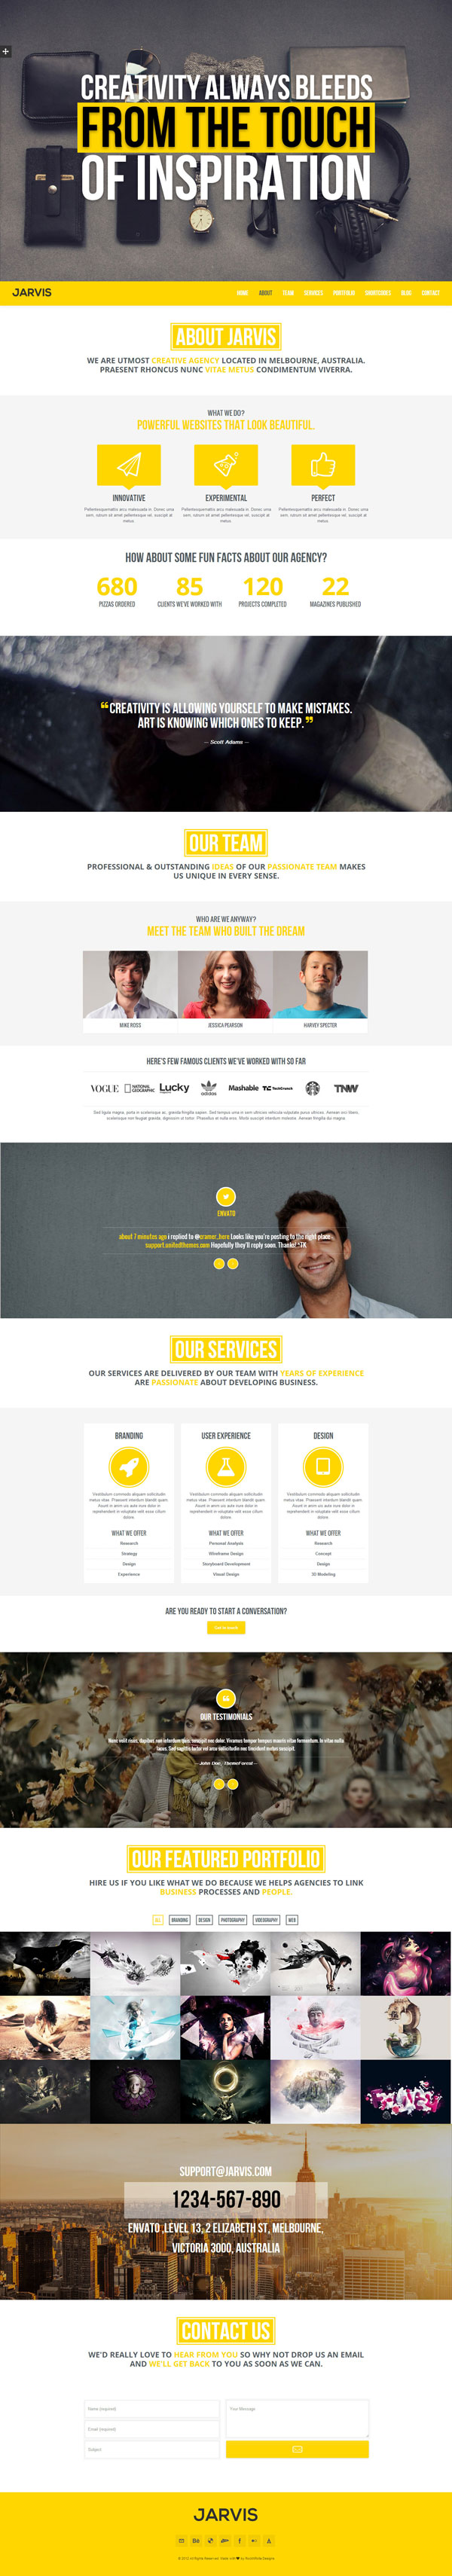 Jarvis One Page Parallax Wordpress Theme By Rocknrolladesigns